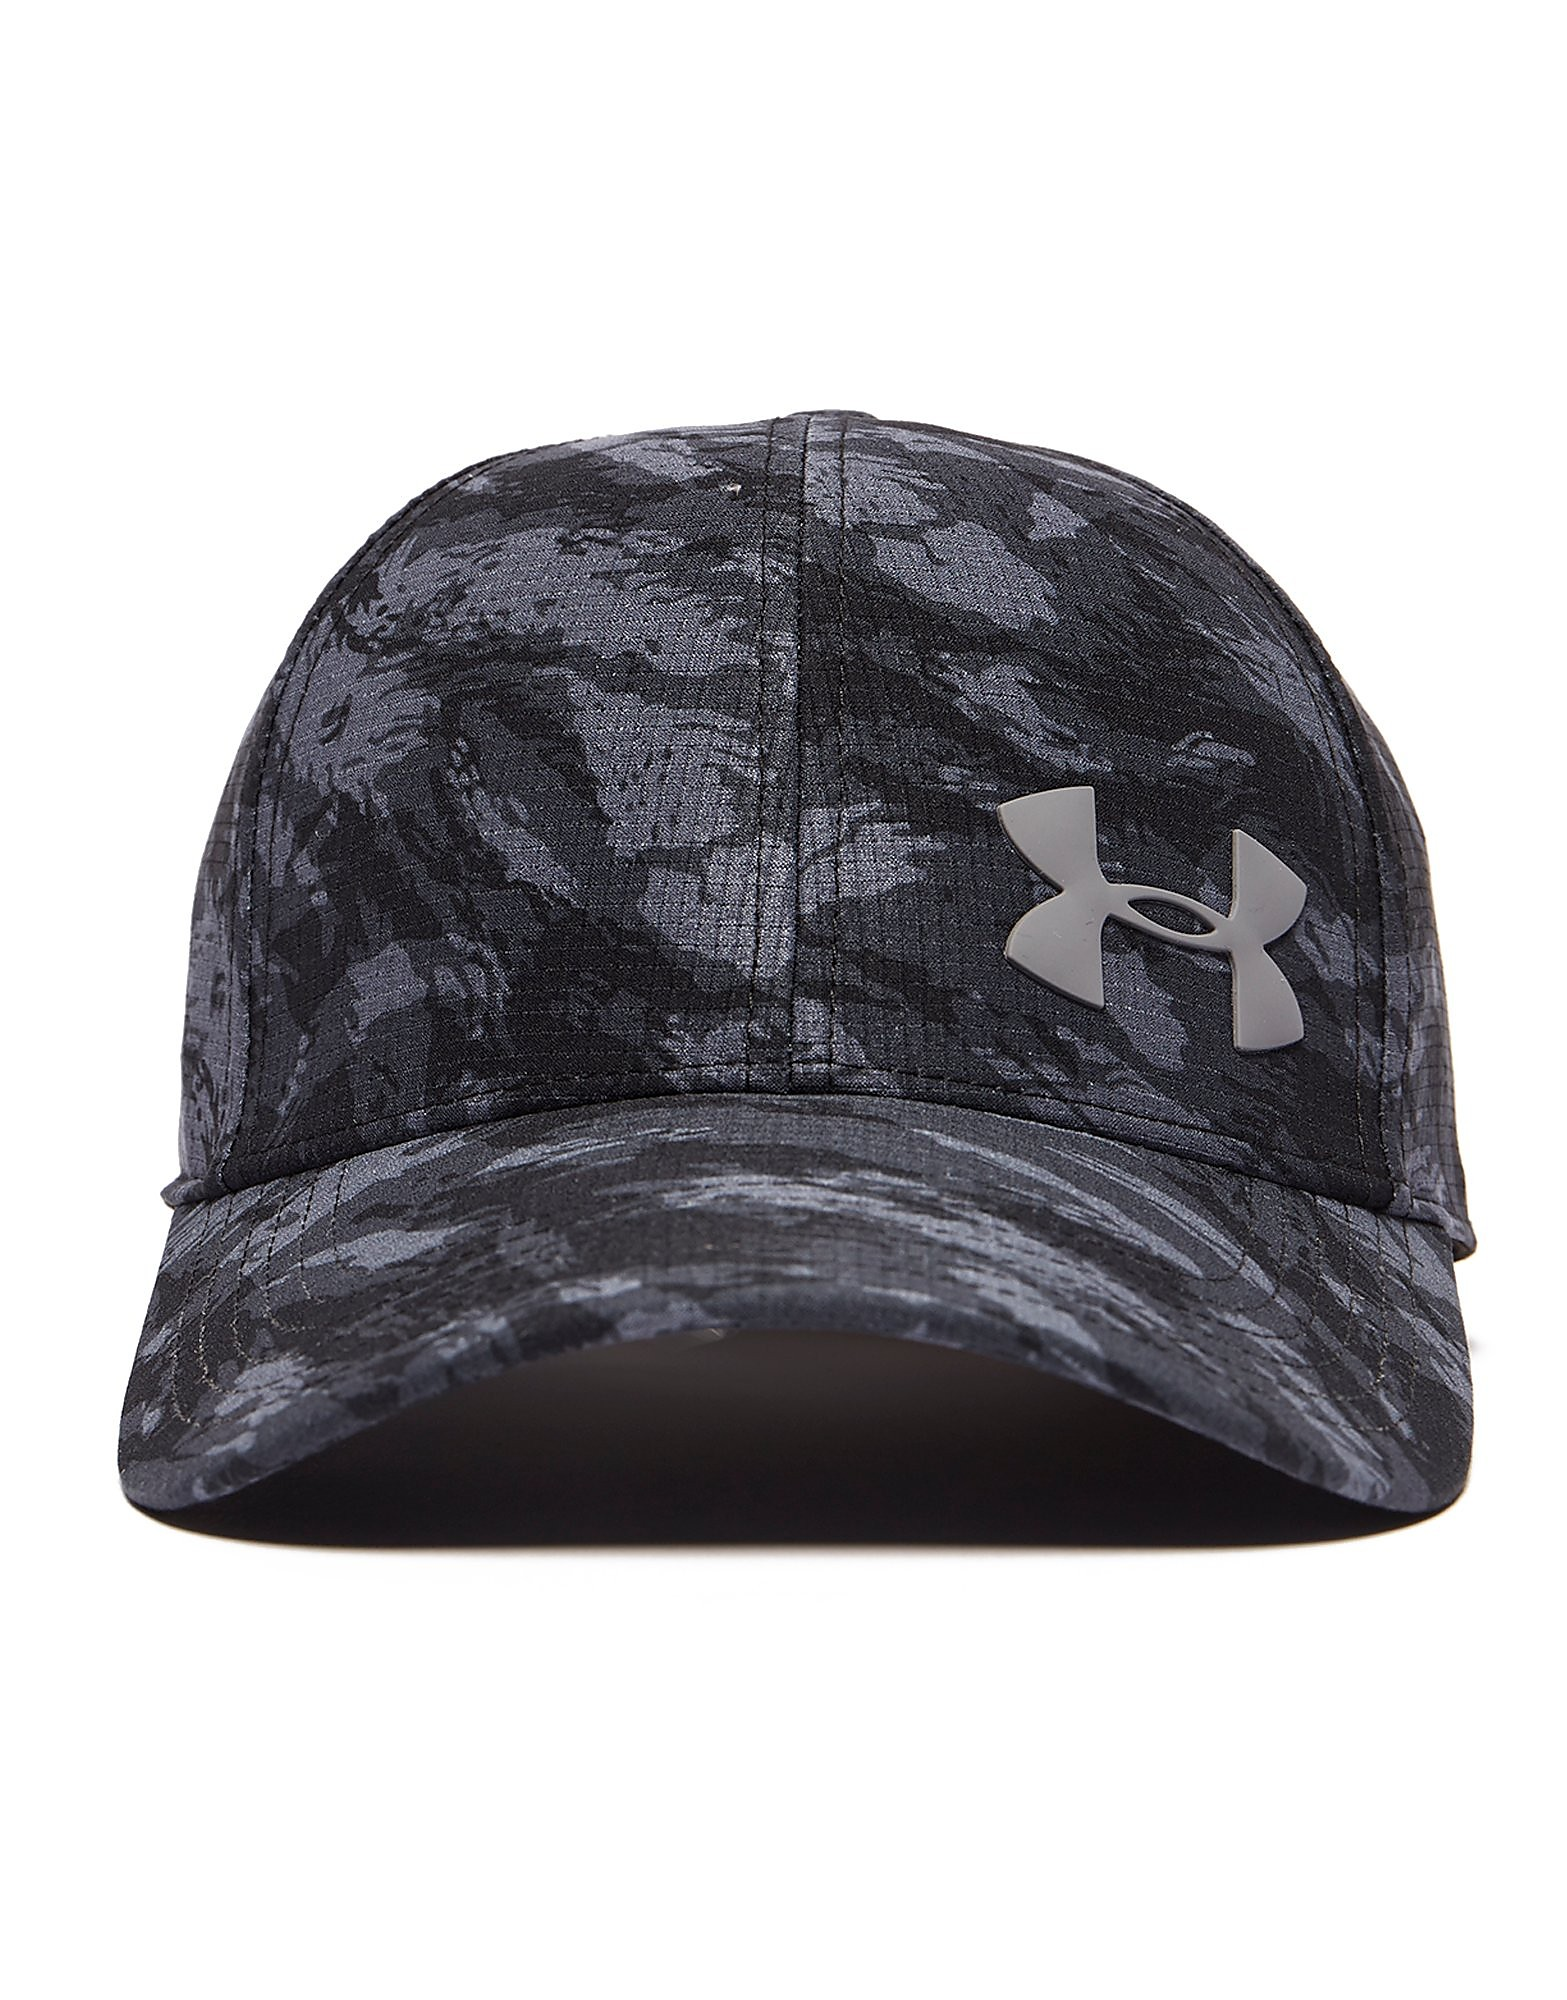 Under Armour Armour Vent Men's Training Cap